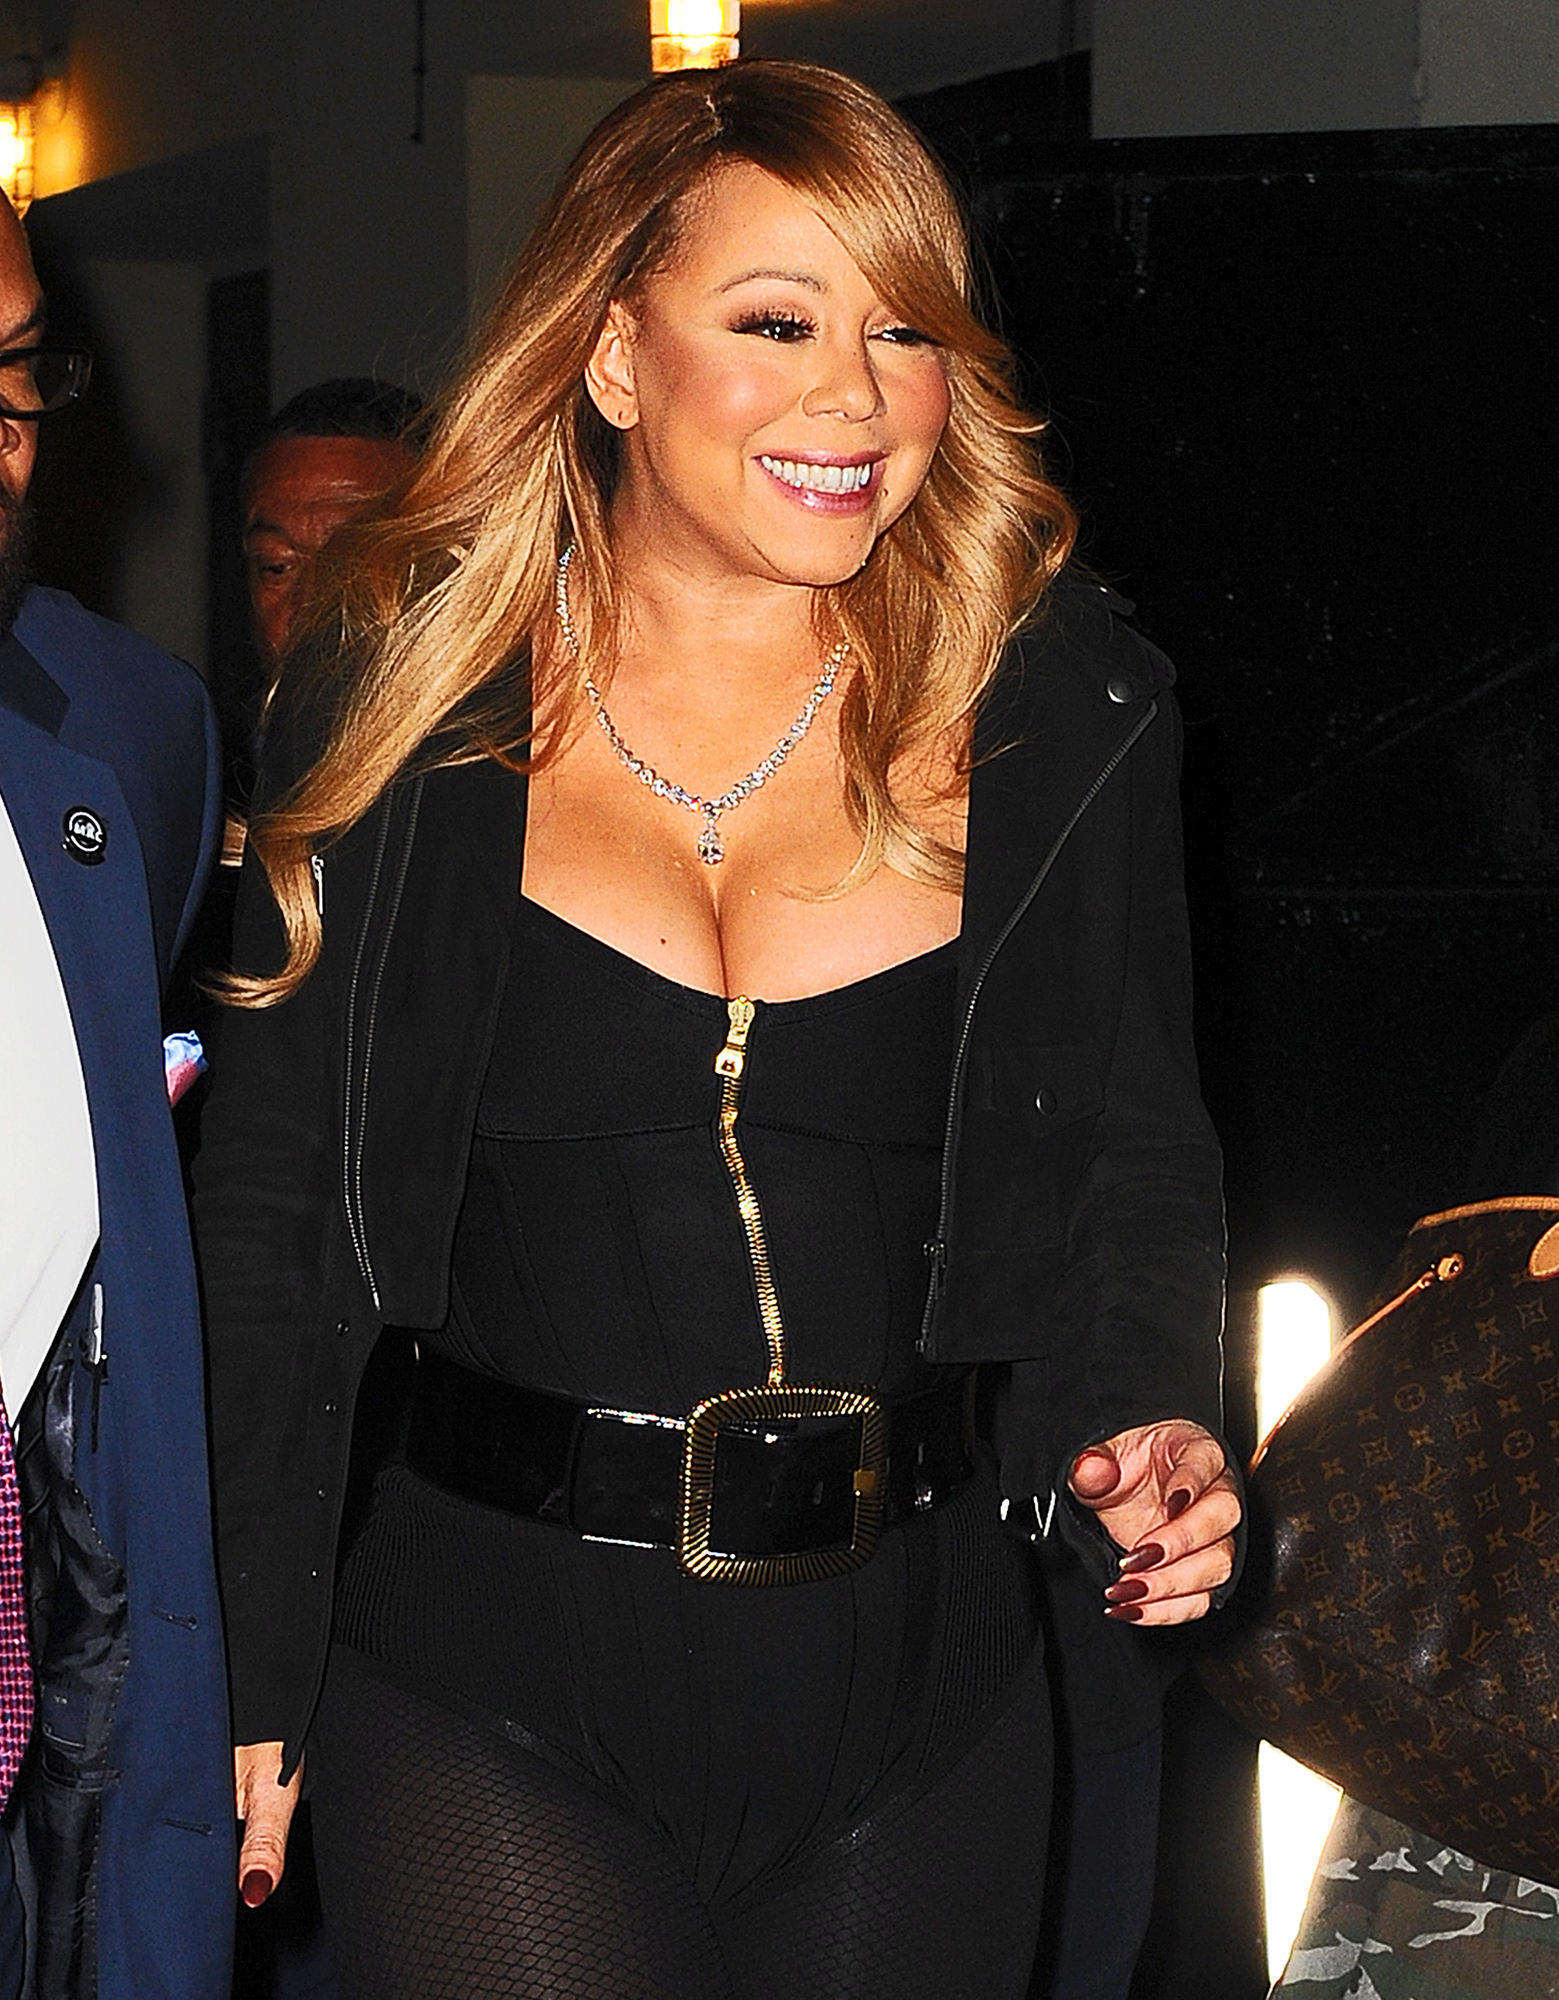 Mariah Carey stuns as she greets fans after her christmas concert in New York